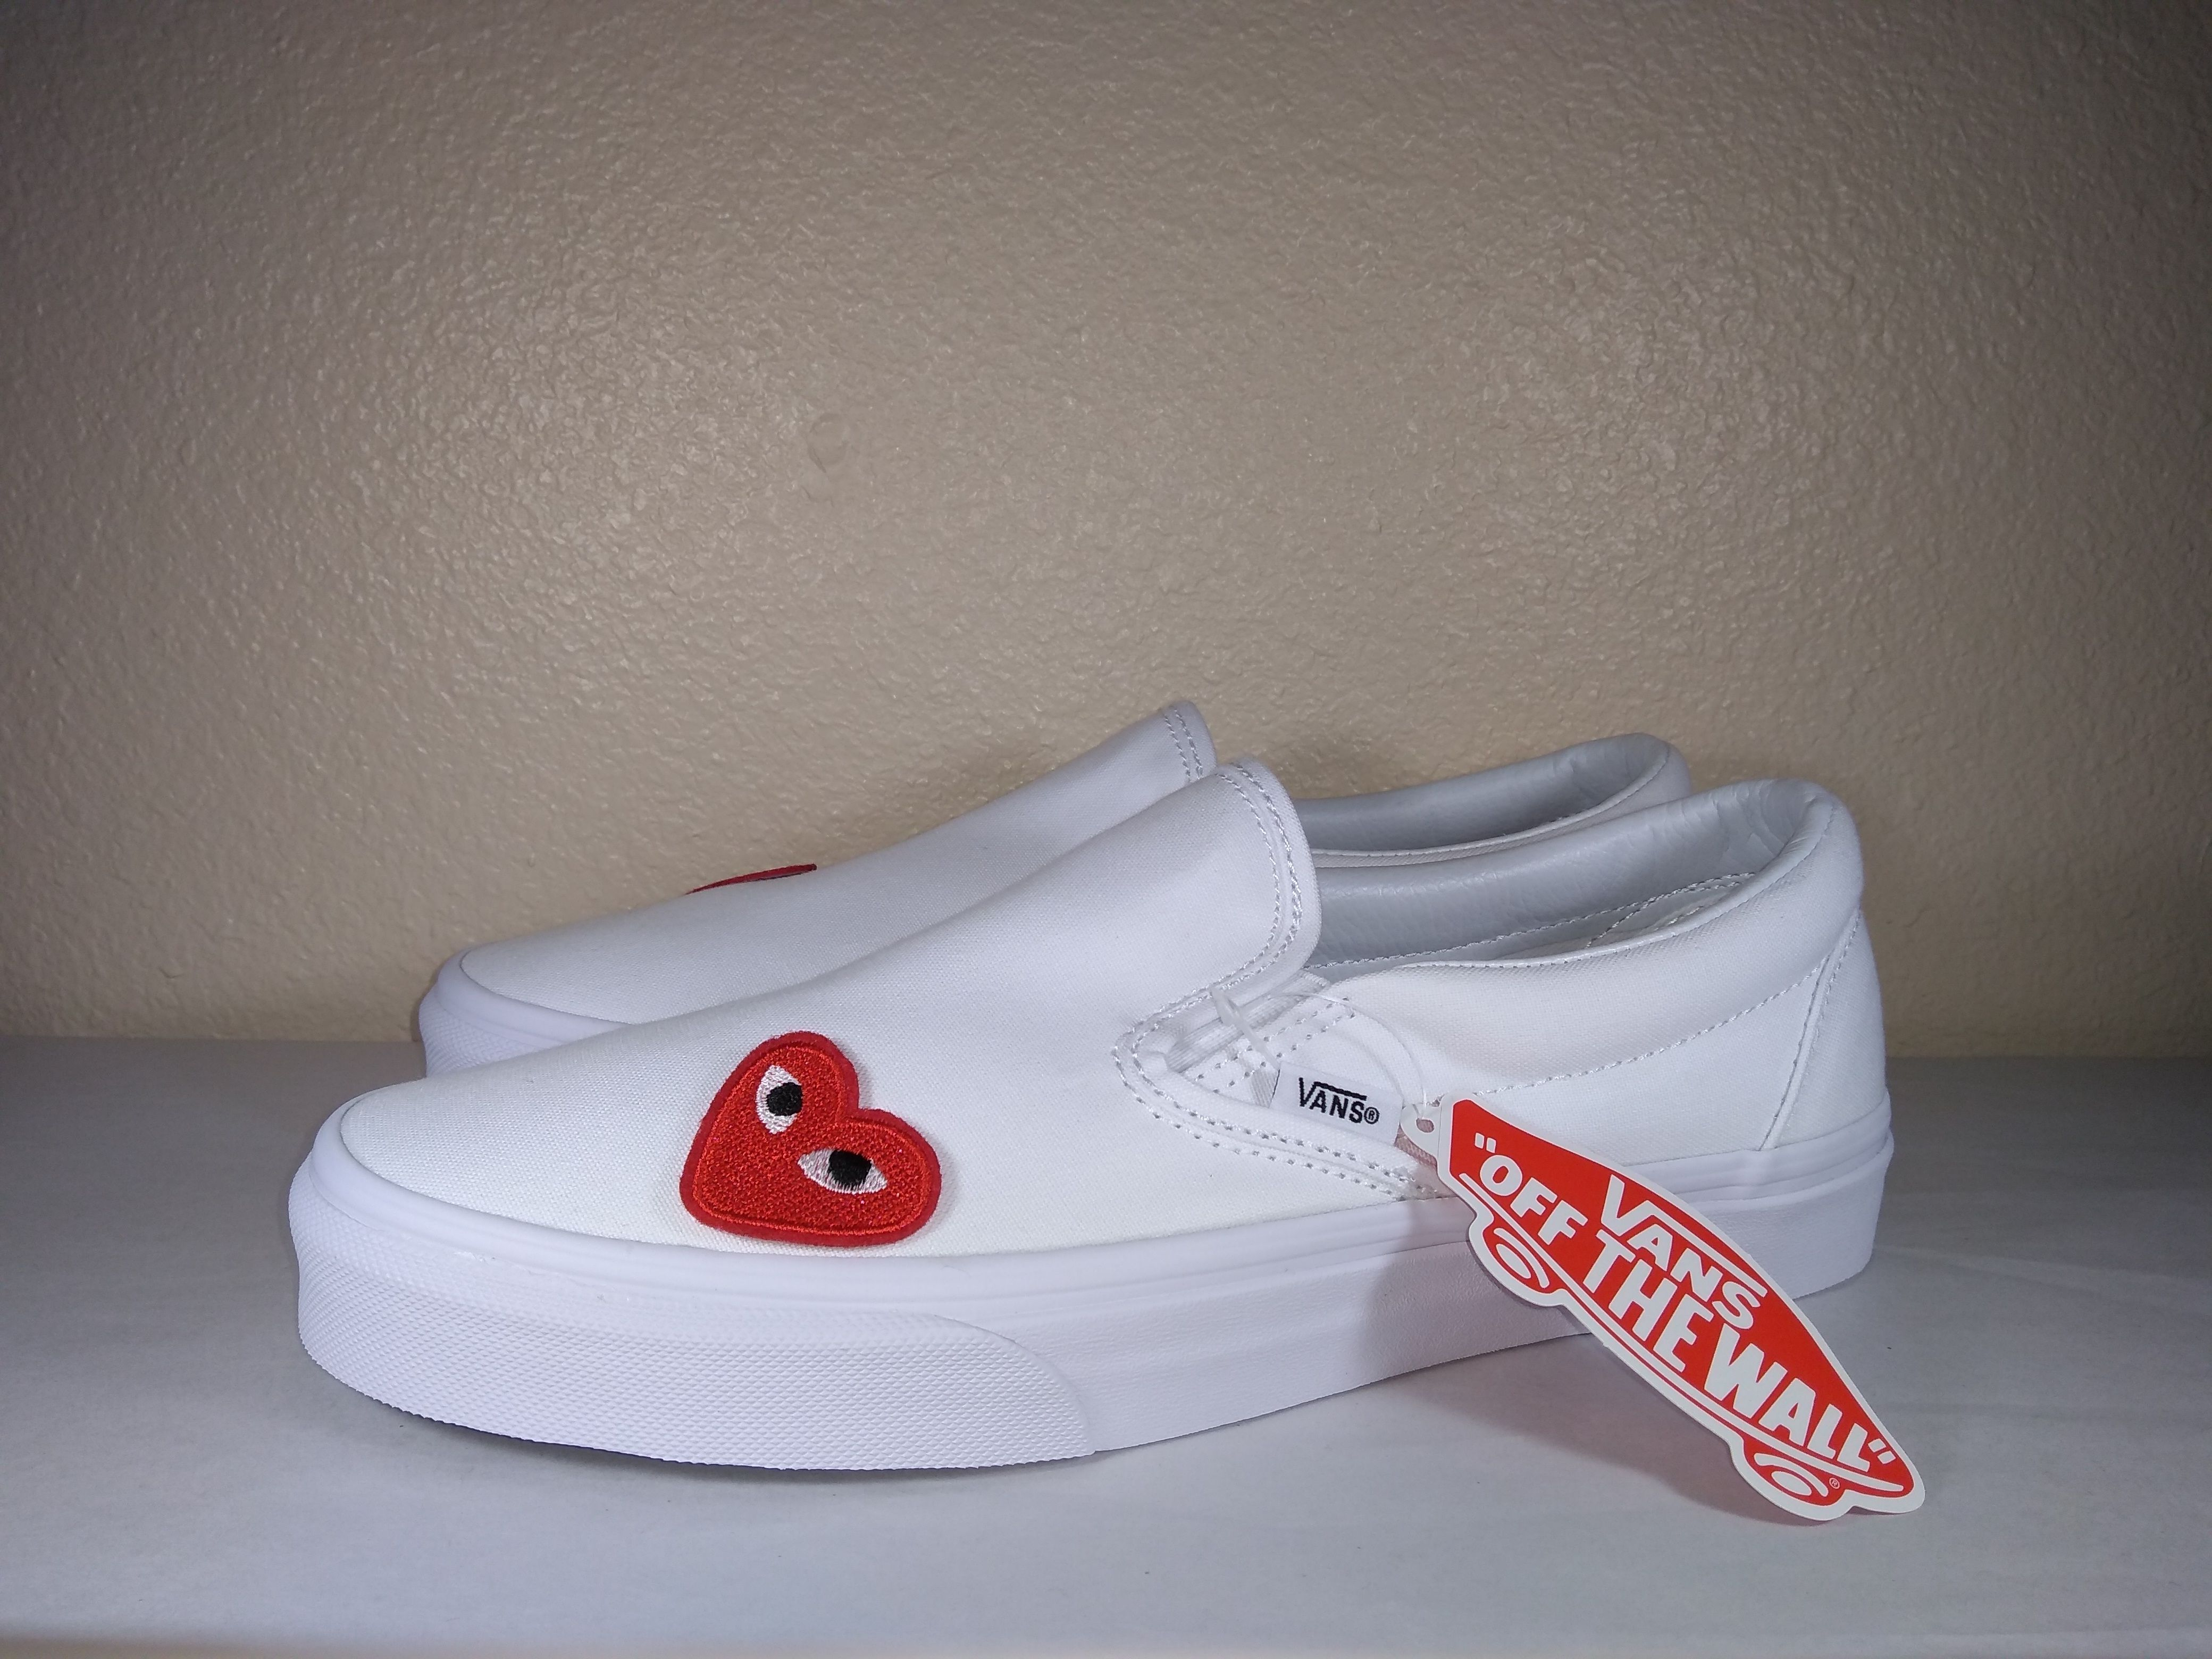 This is the Vans X CDG custom shoe by Kutsuh,Part of